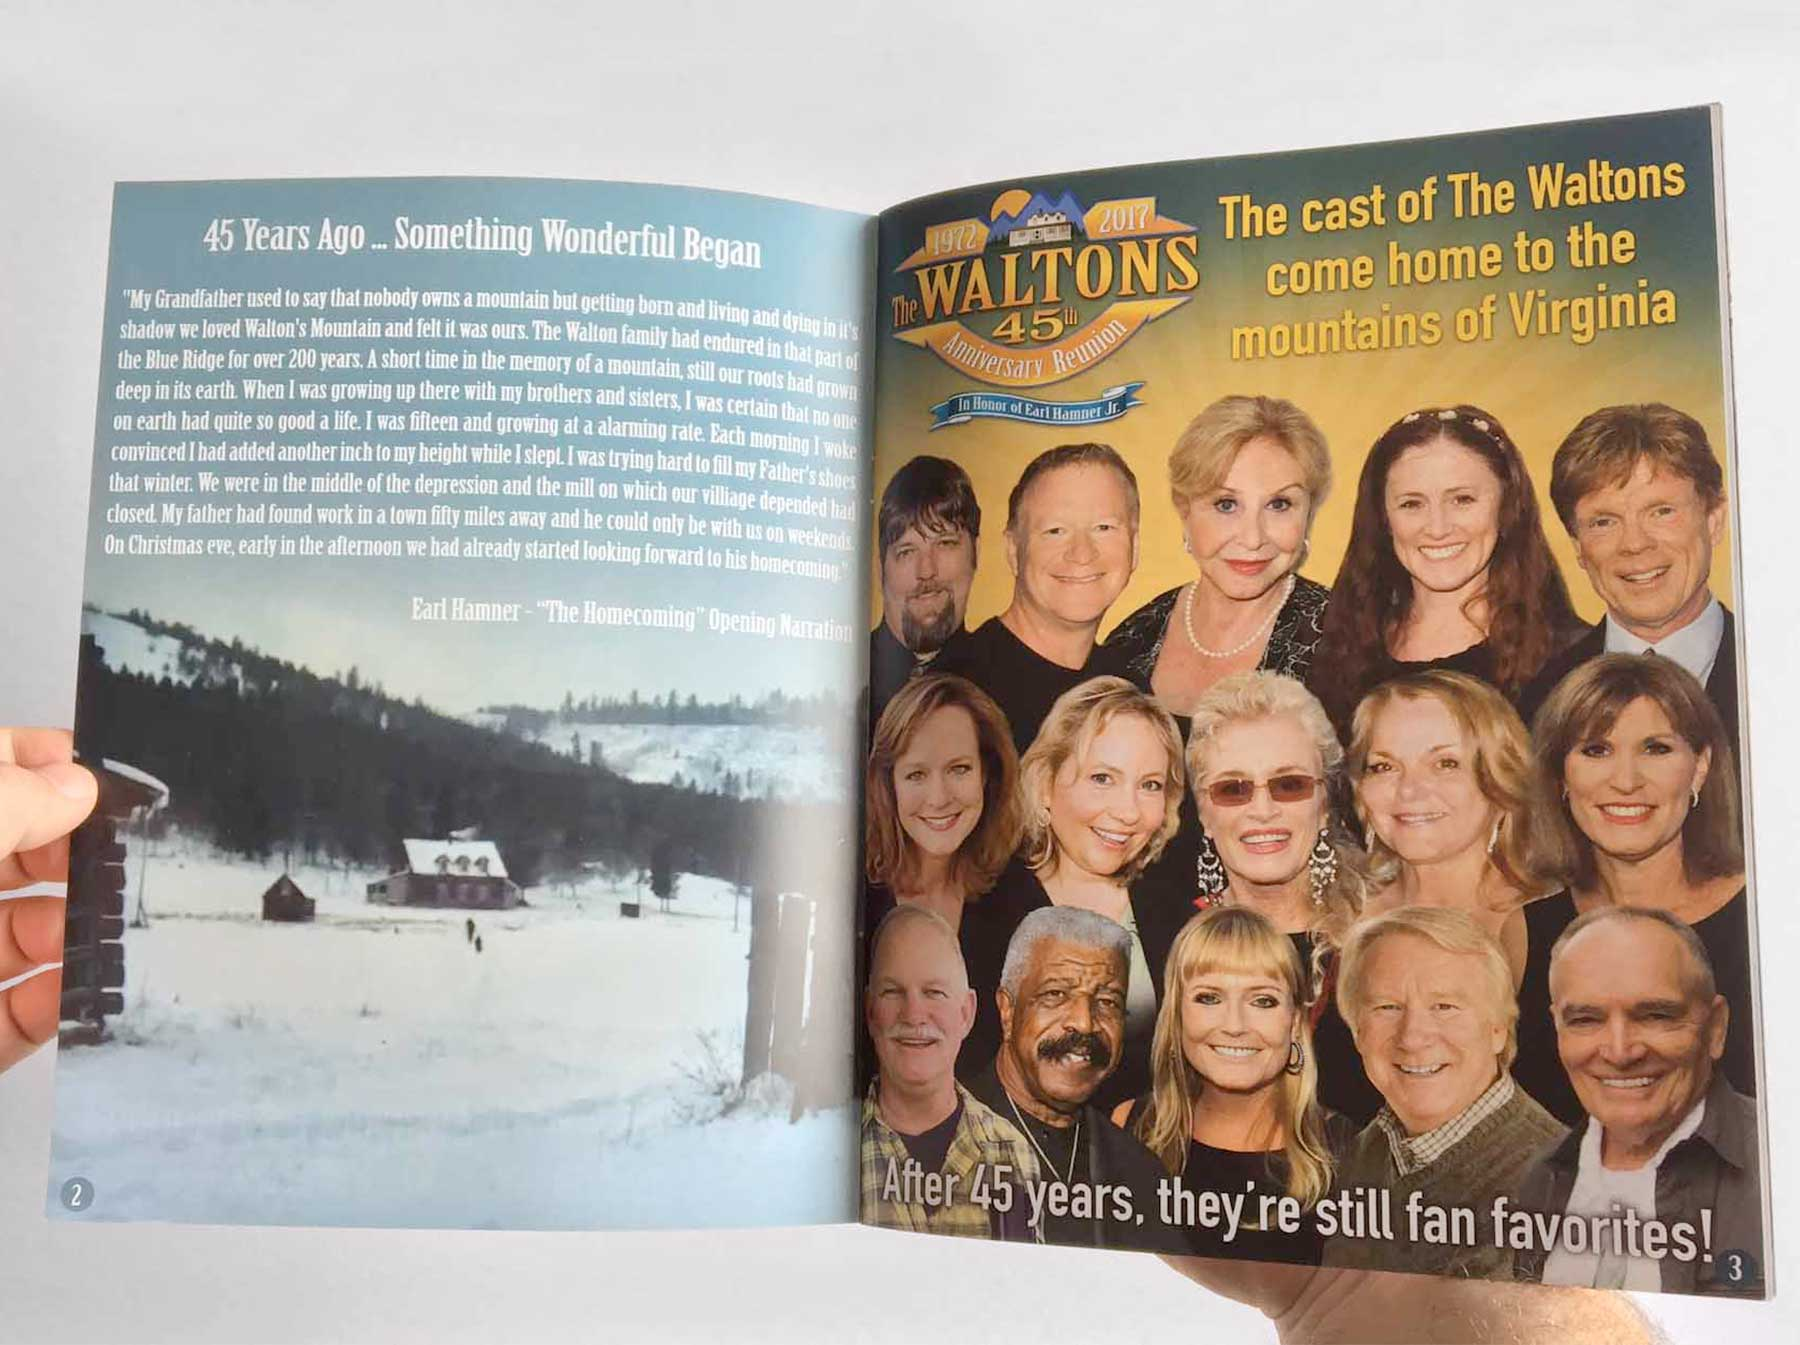 A souvenir program for The Waltons 45th Anniversary Reunion